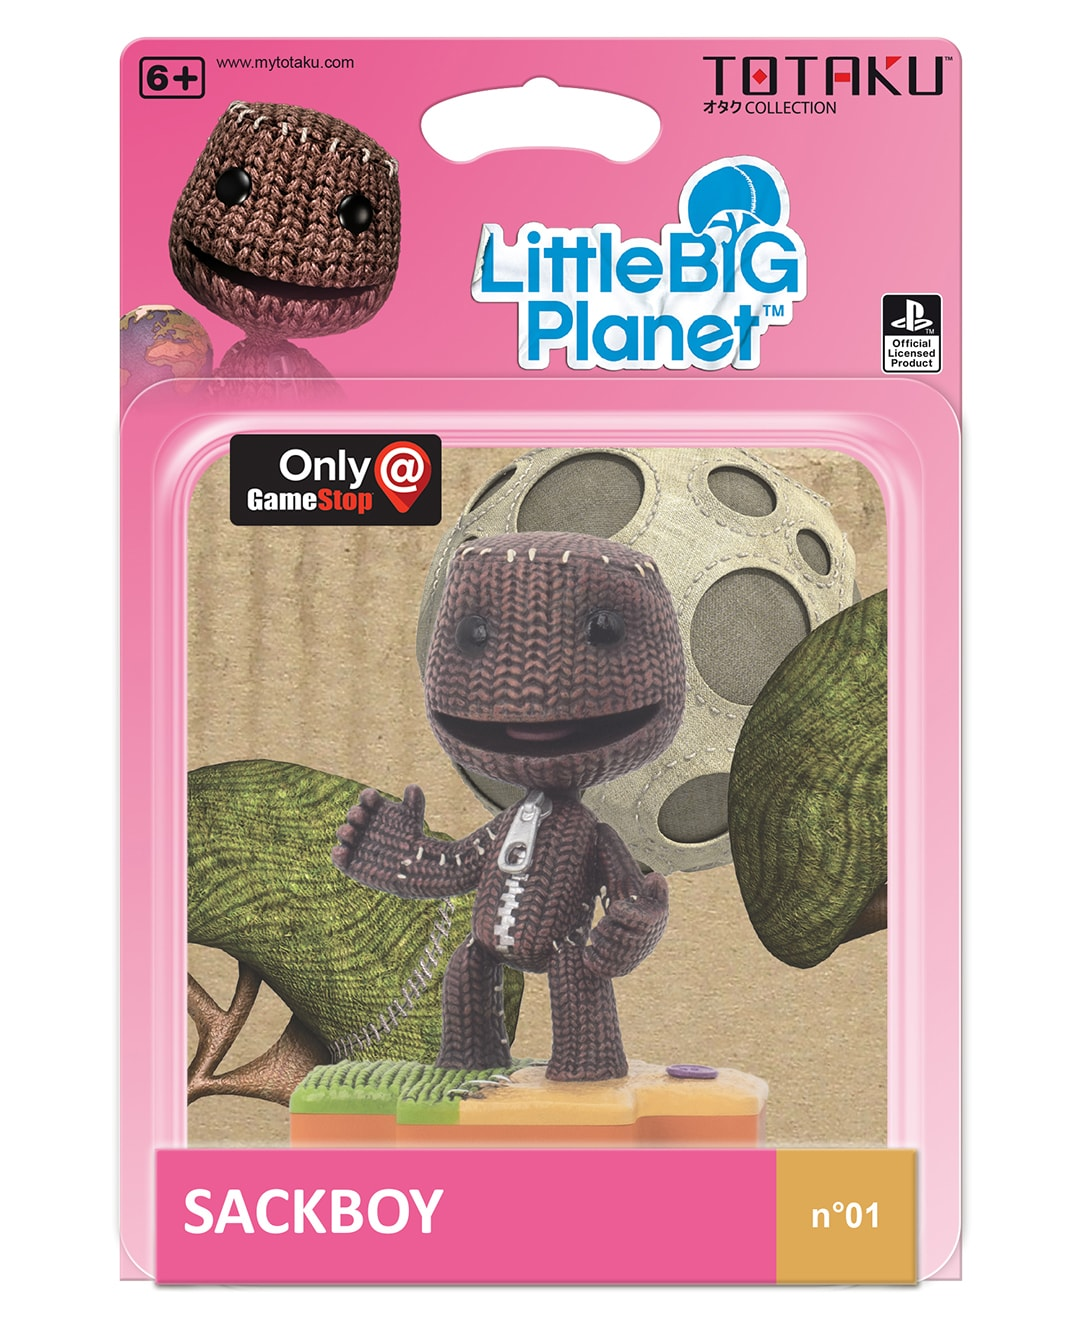 sackboy totaku